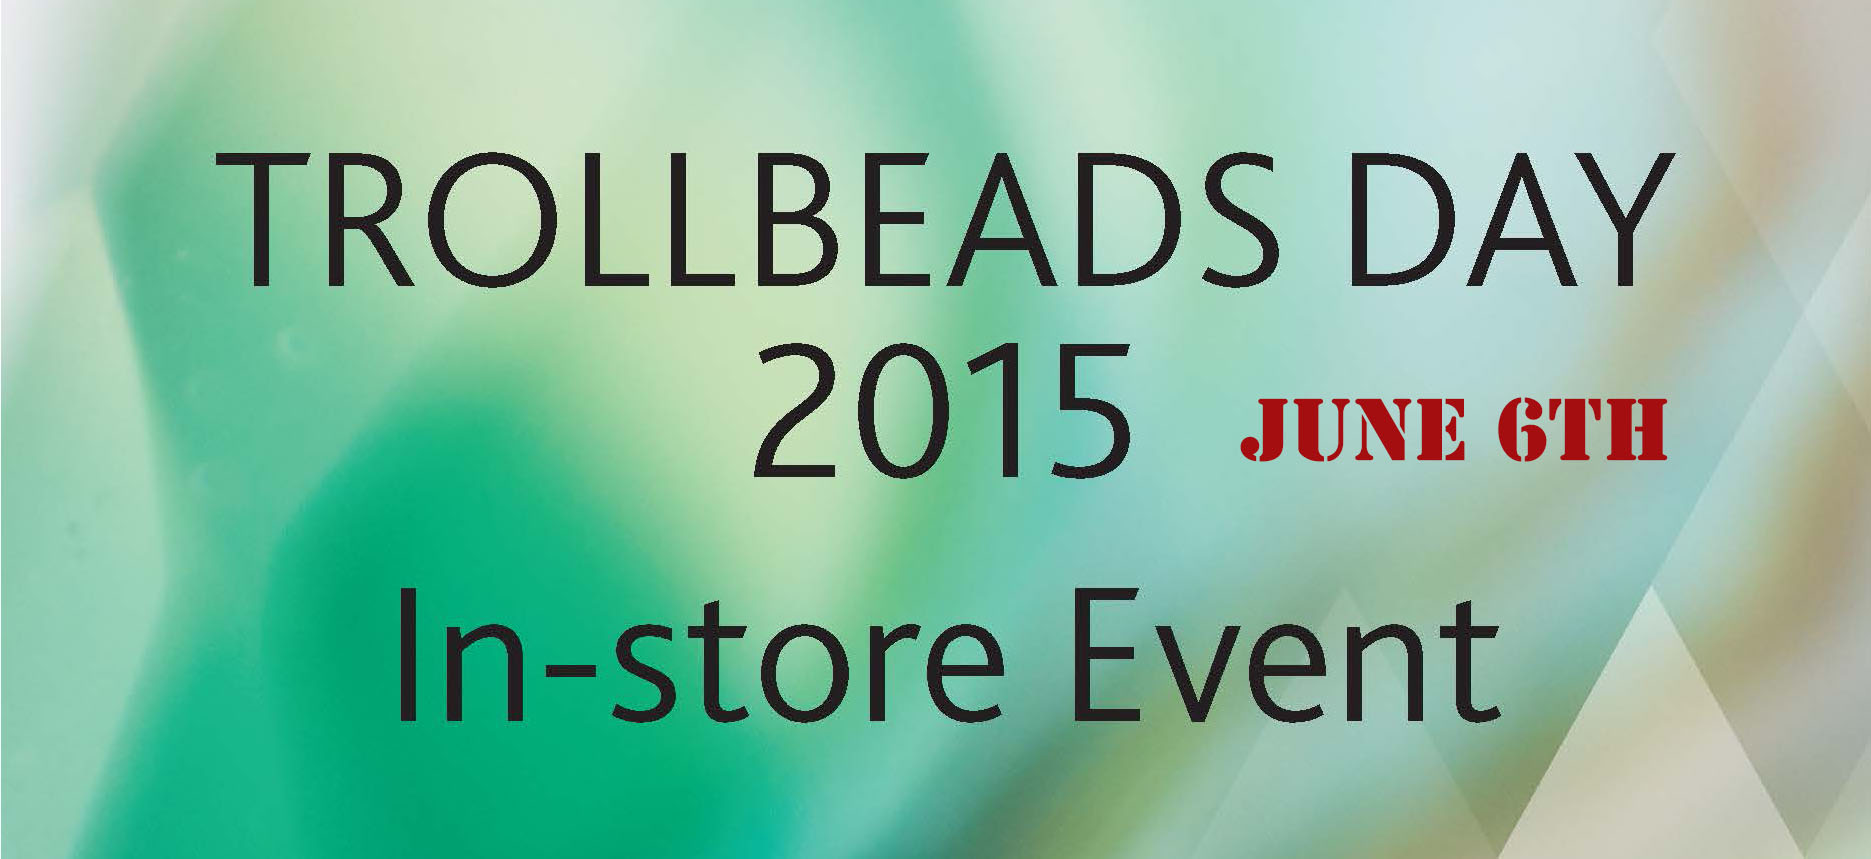 Trollbeads Day Banner